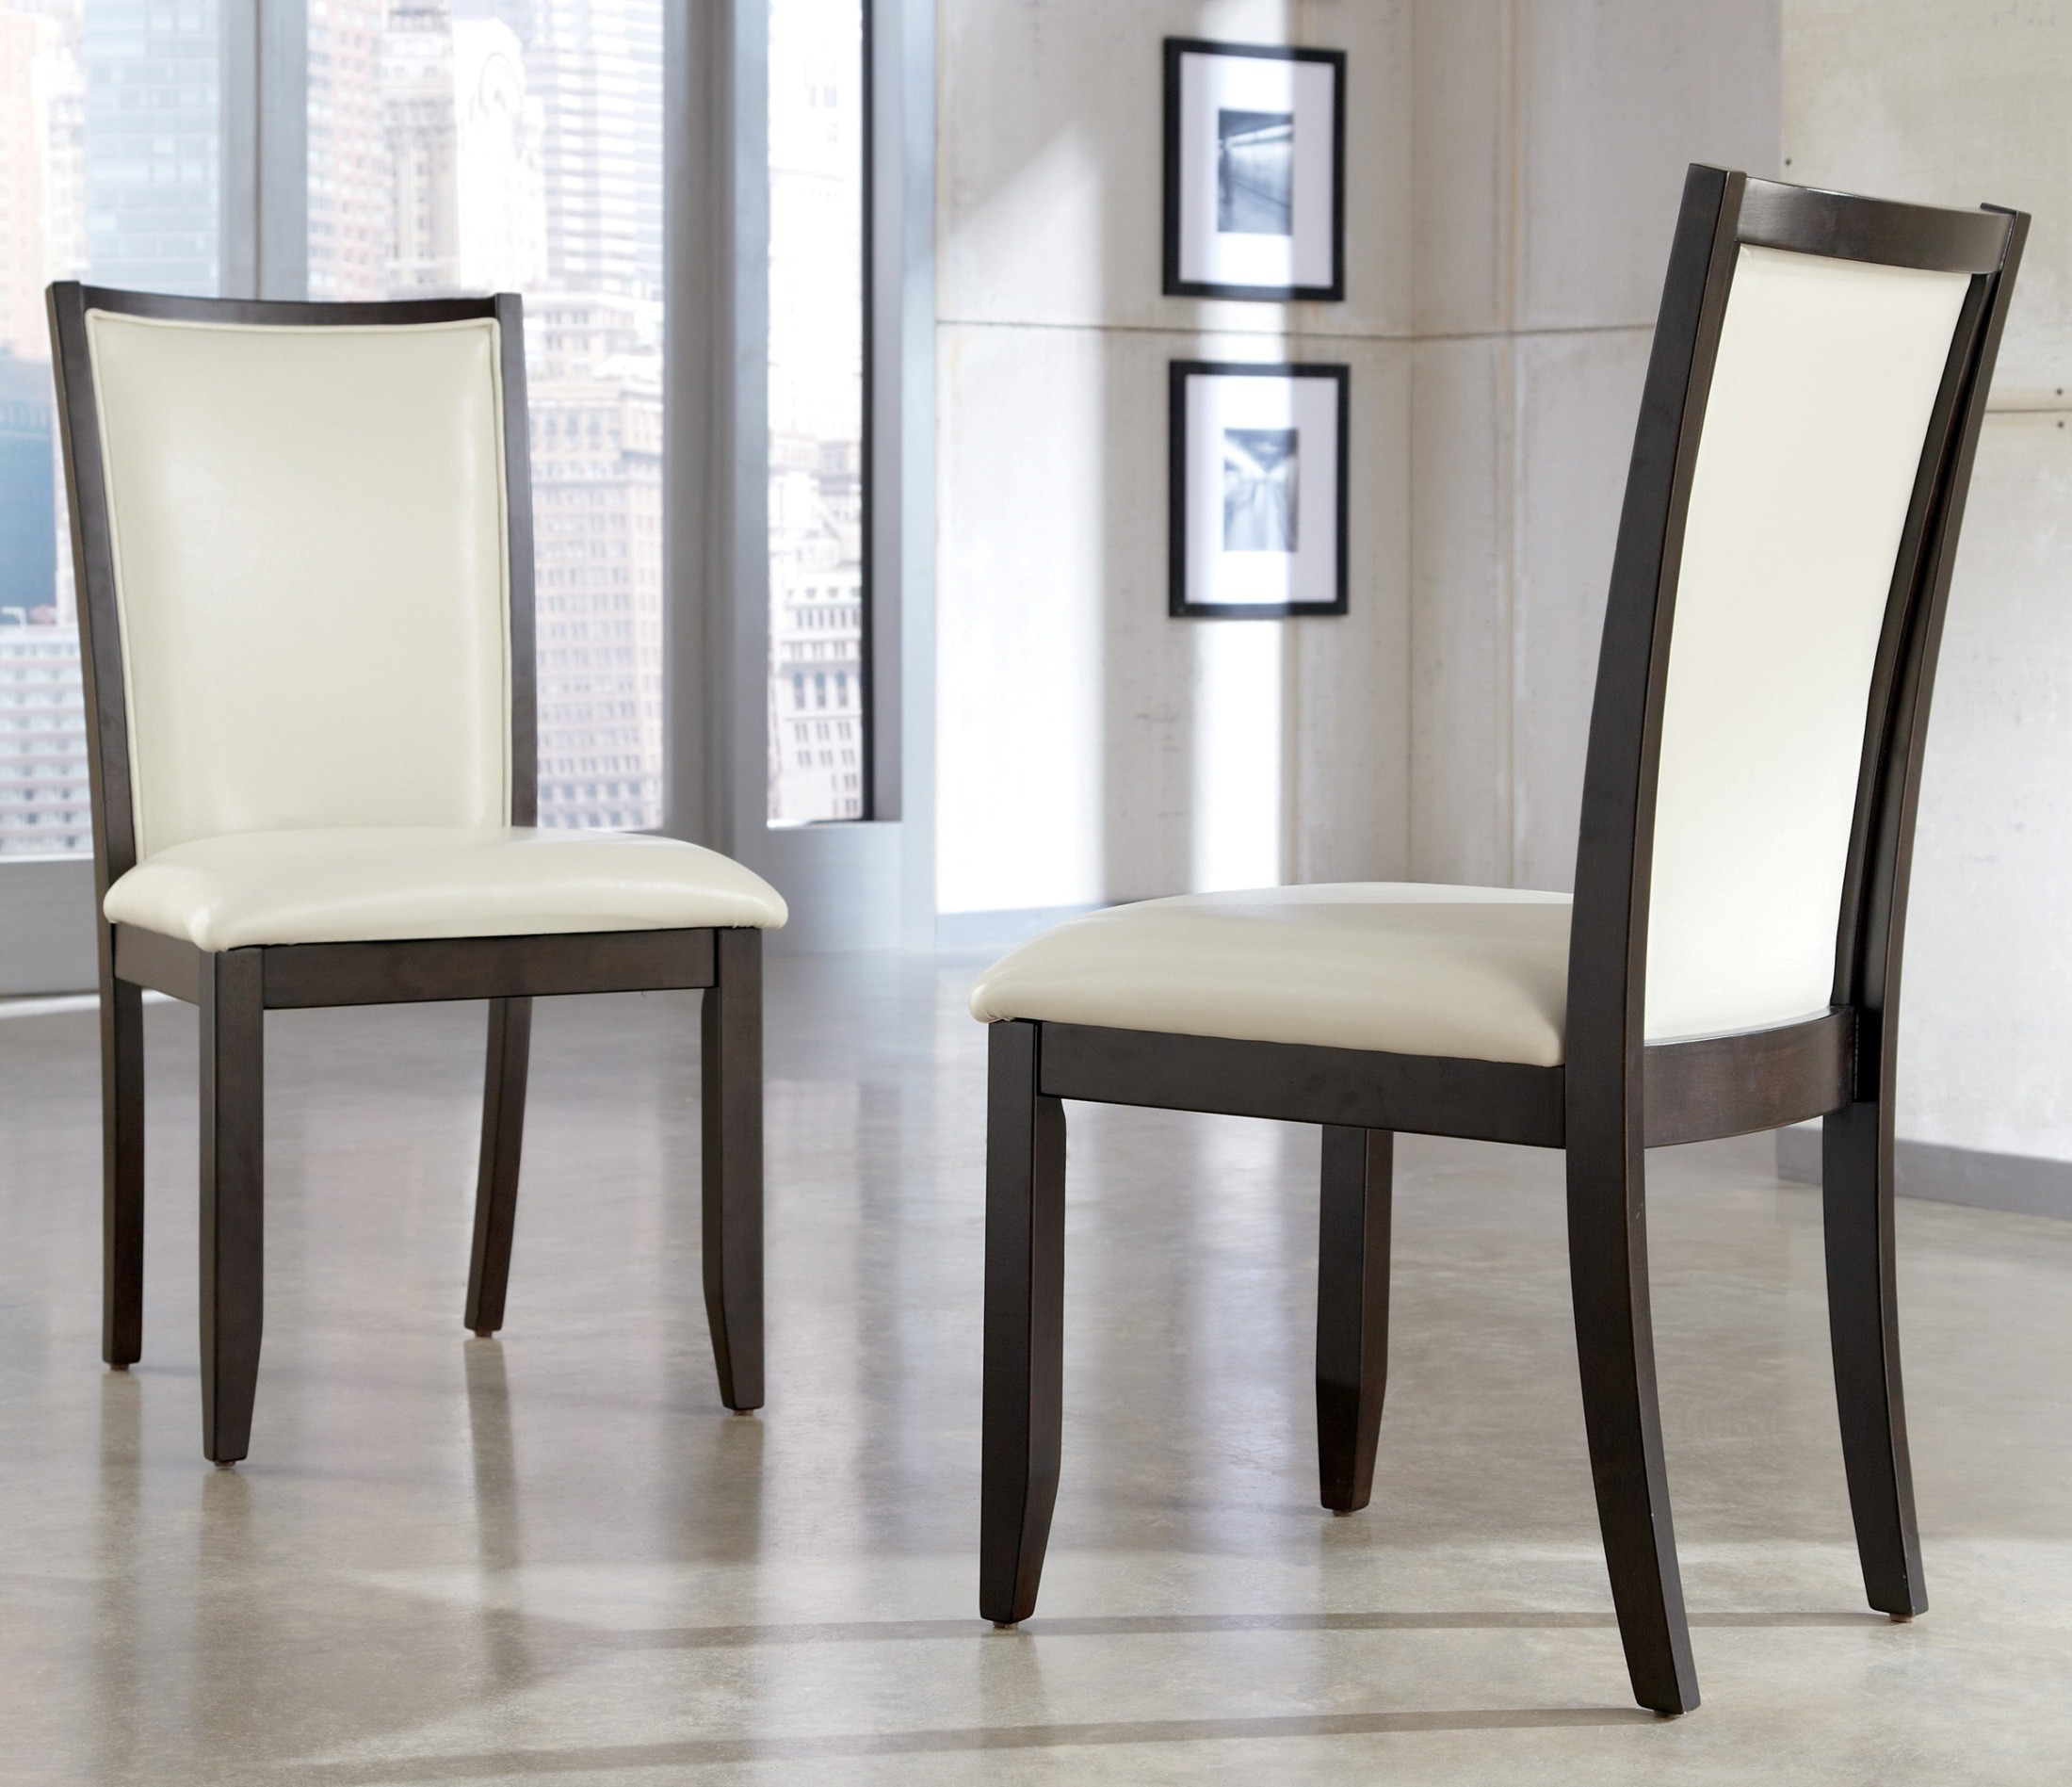 dining accent chairs otter bath chair trishelle upholstered cream side set of 2